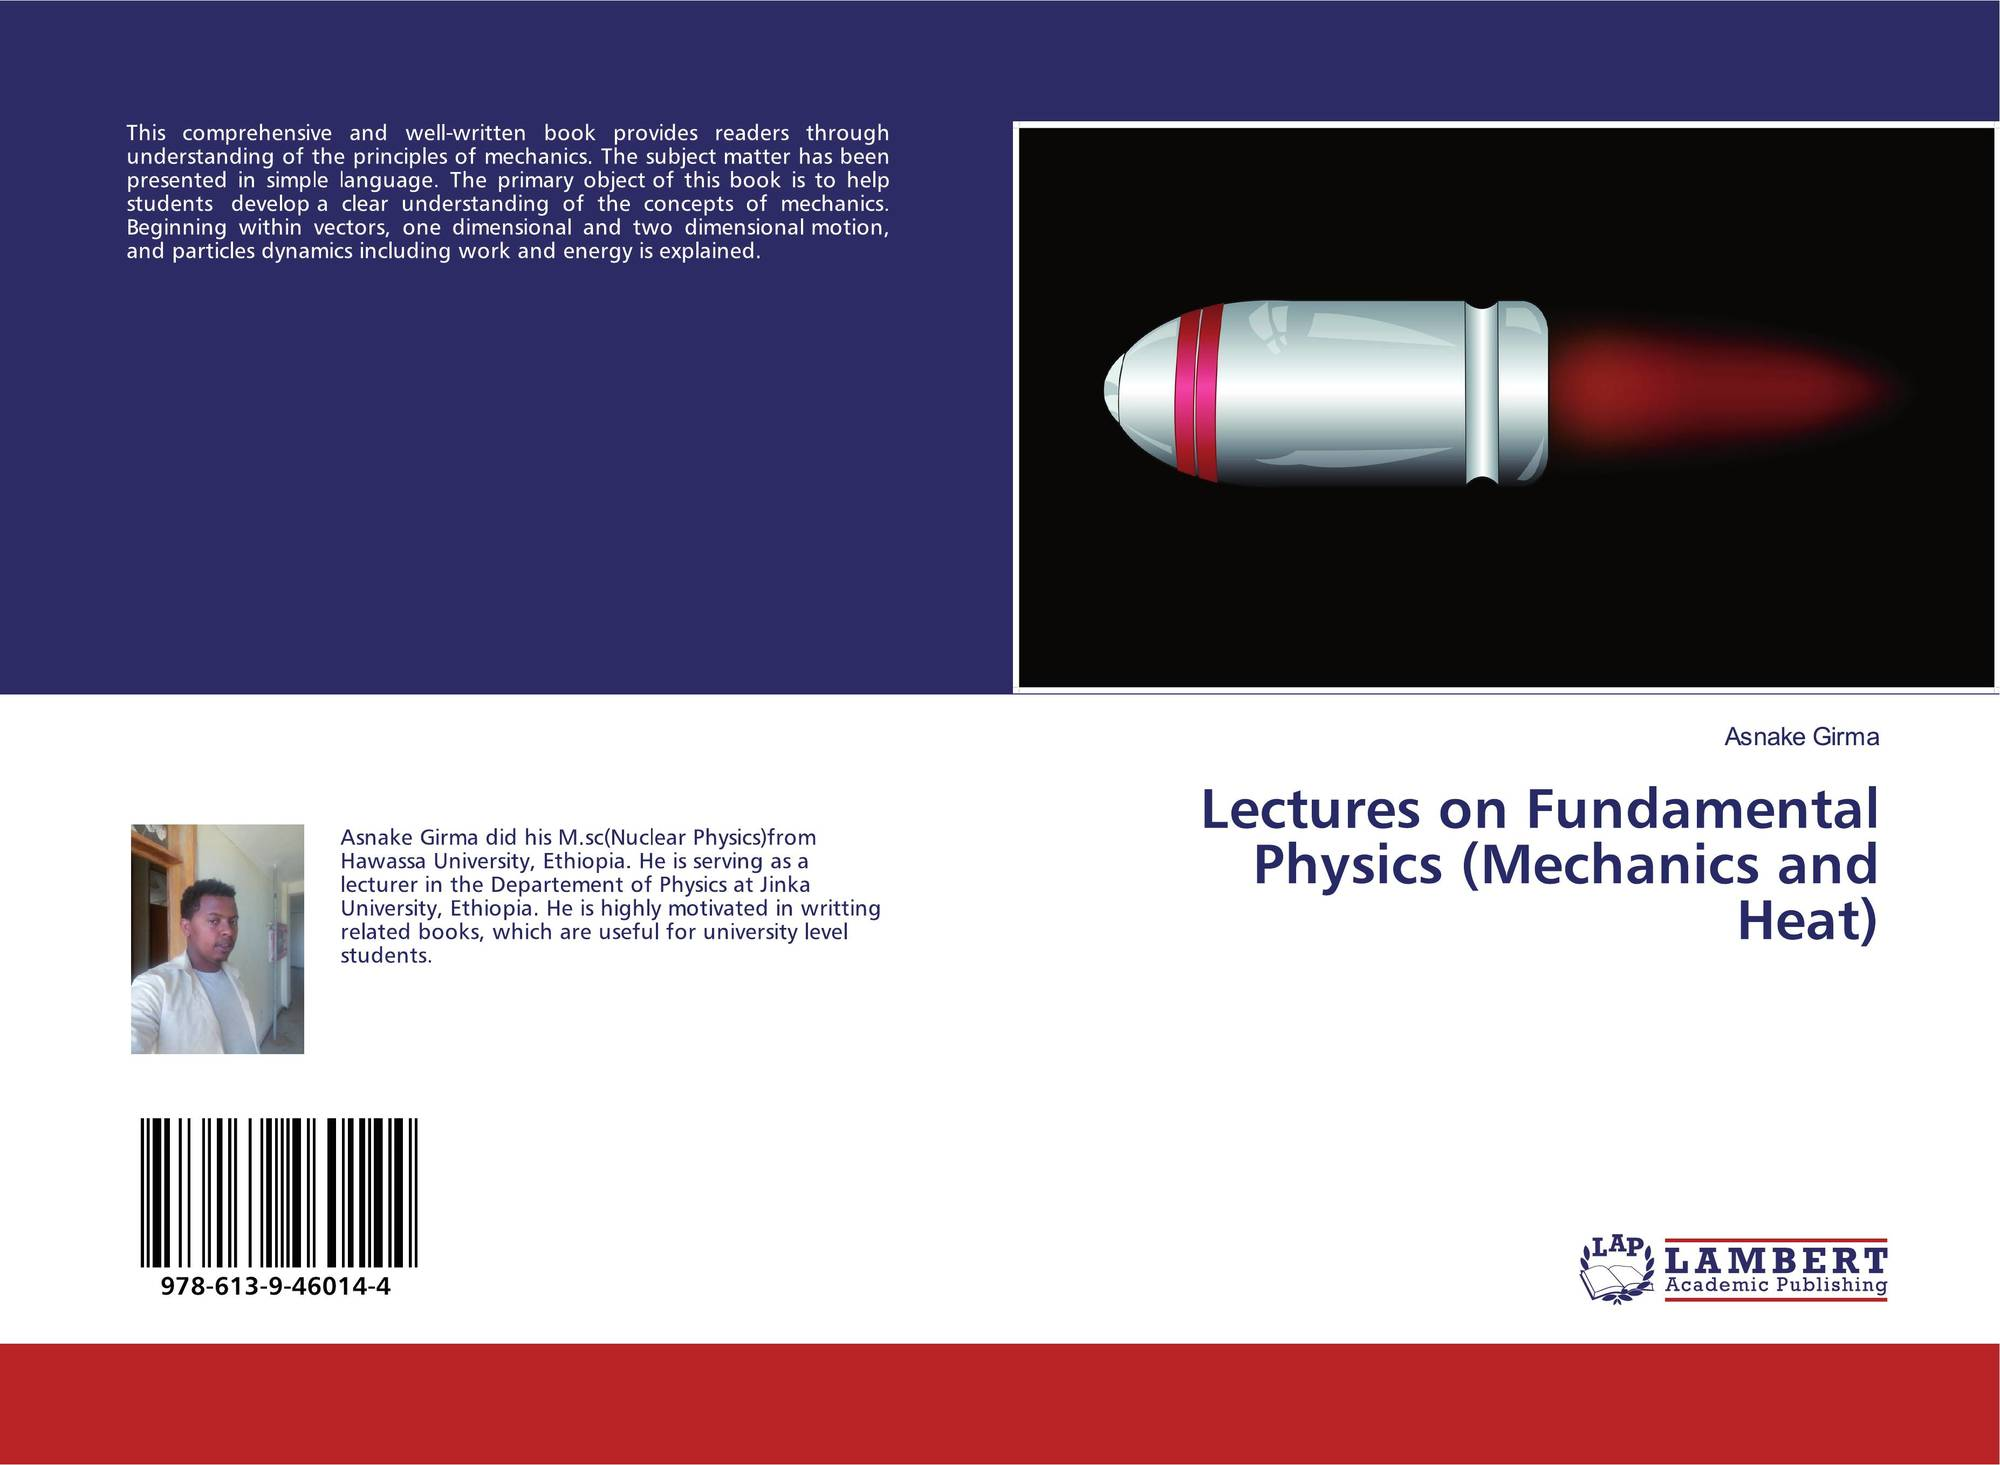 Lectures on Fundamental Physics (Mechanics and Heat), 978-613-9